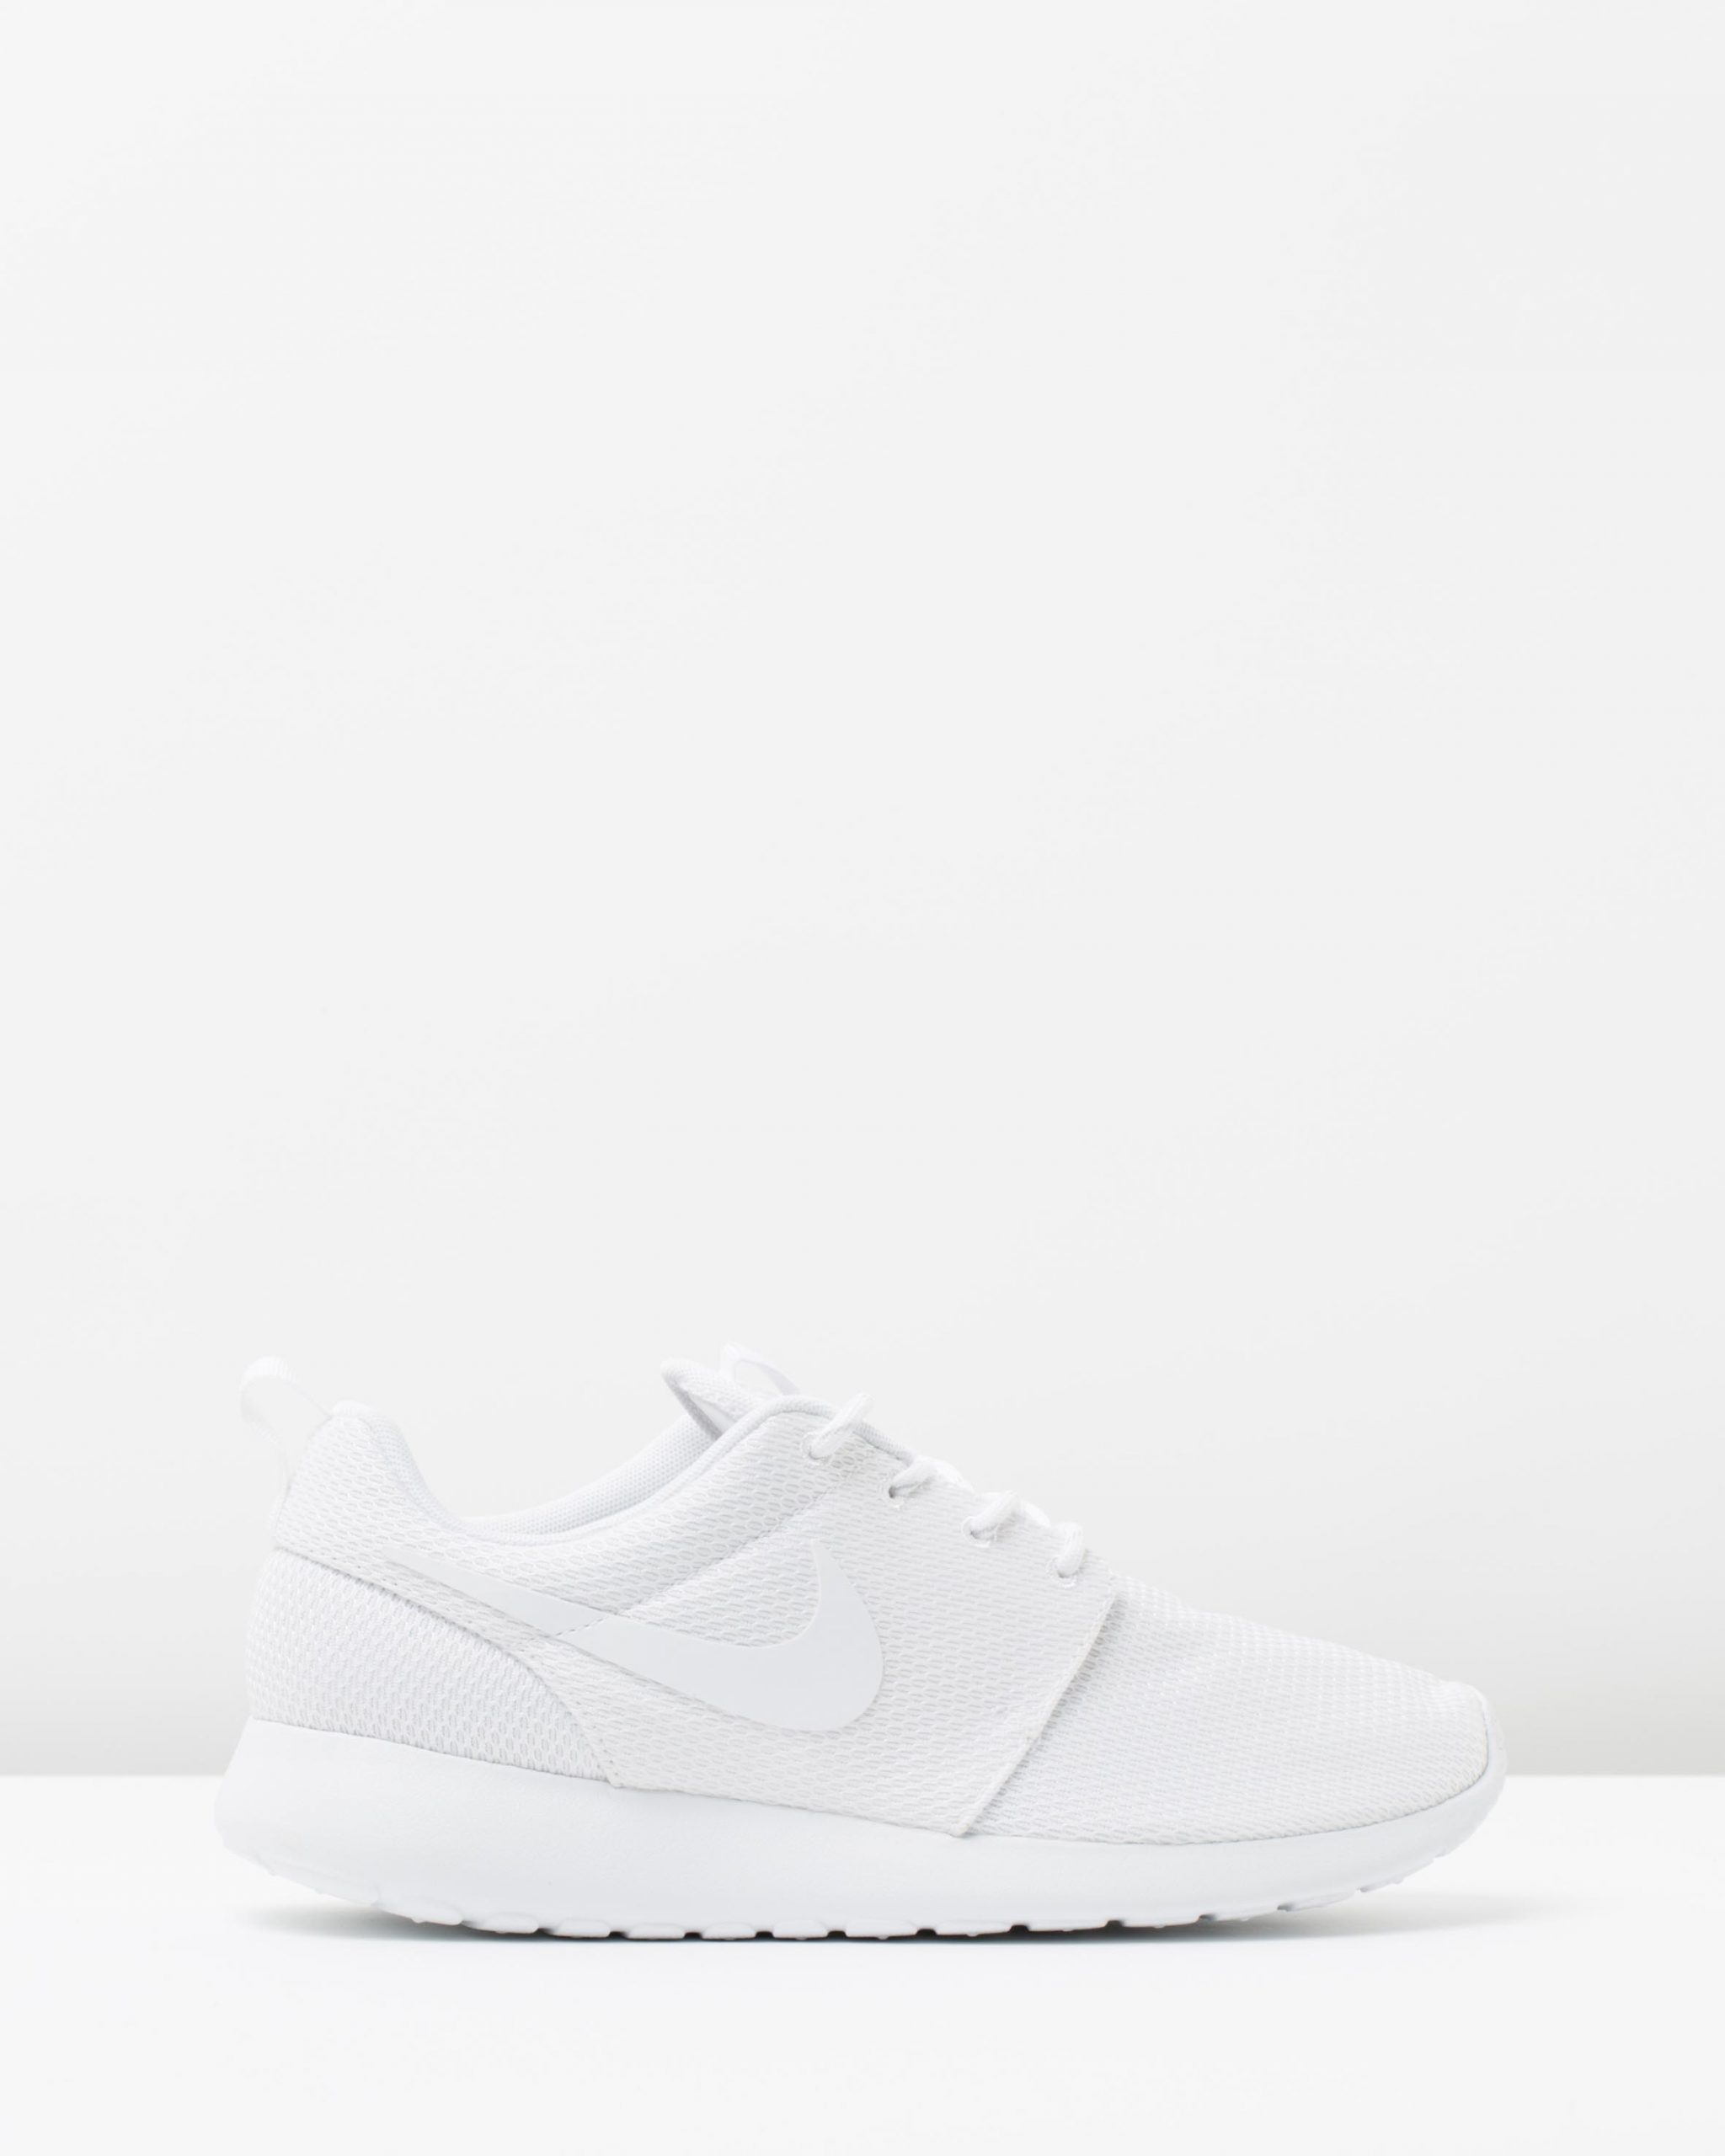 Nike Wmns Roshe Run White